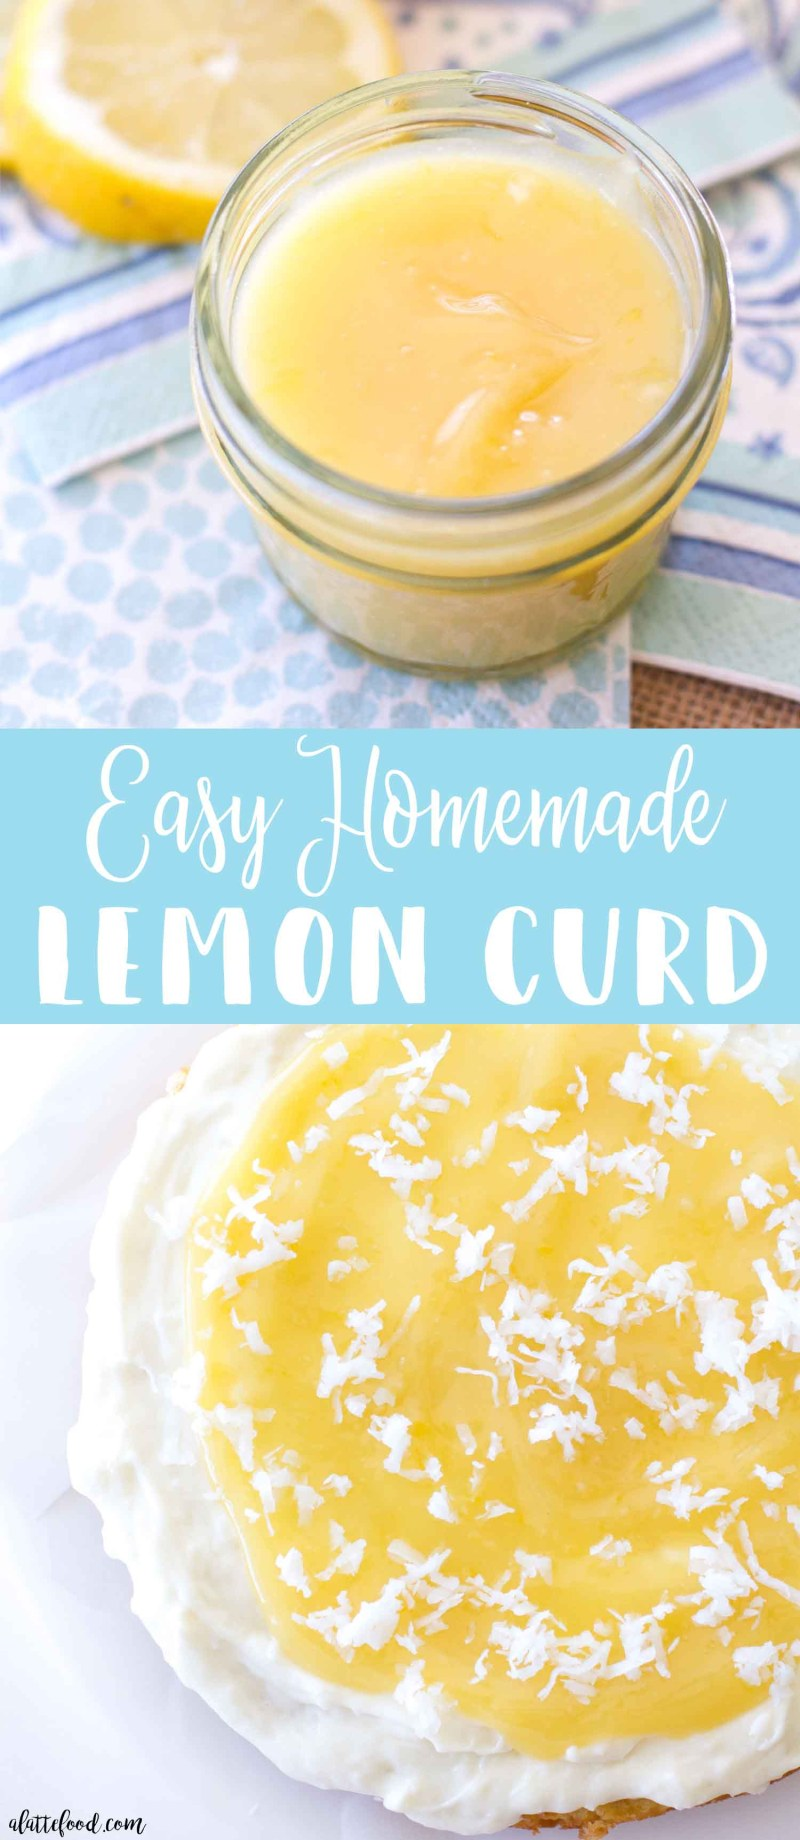 This easy lemon curd is simple to make and so incredibly tasty! Homemade lemon curd is fresh, sweet, and a little tart. It's the best spring recipe to top on lemon cake, homemade cream scones, and warm buttermilk biscuits!